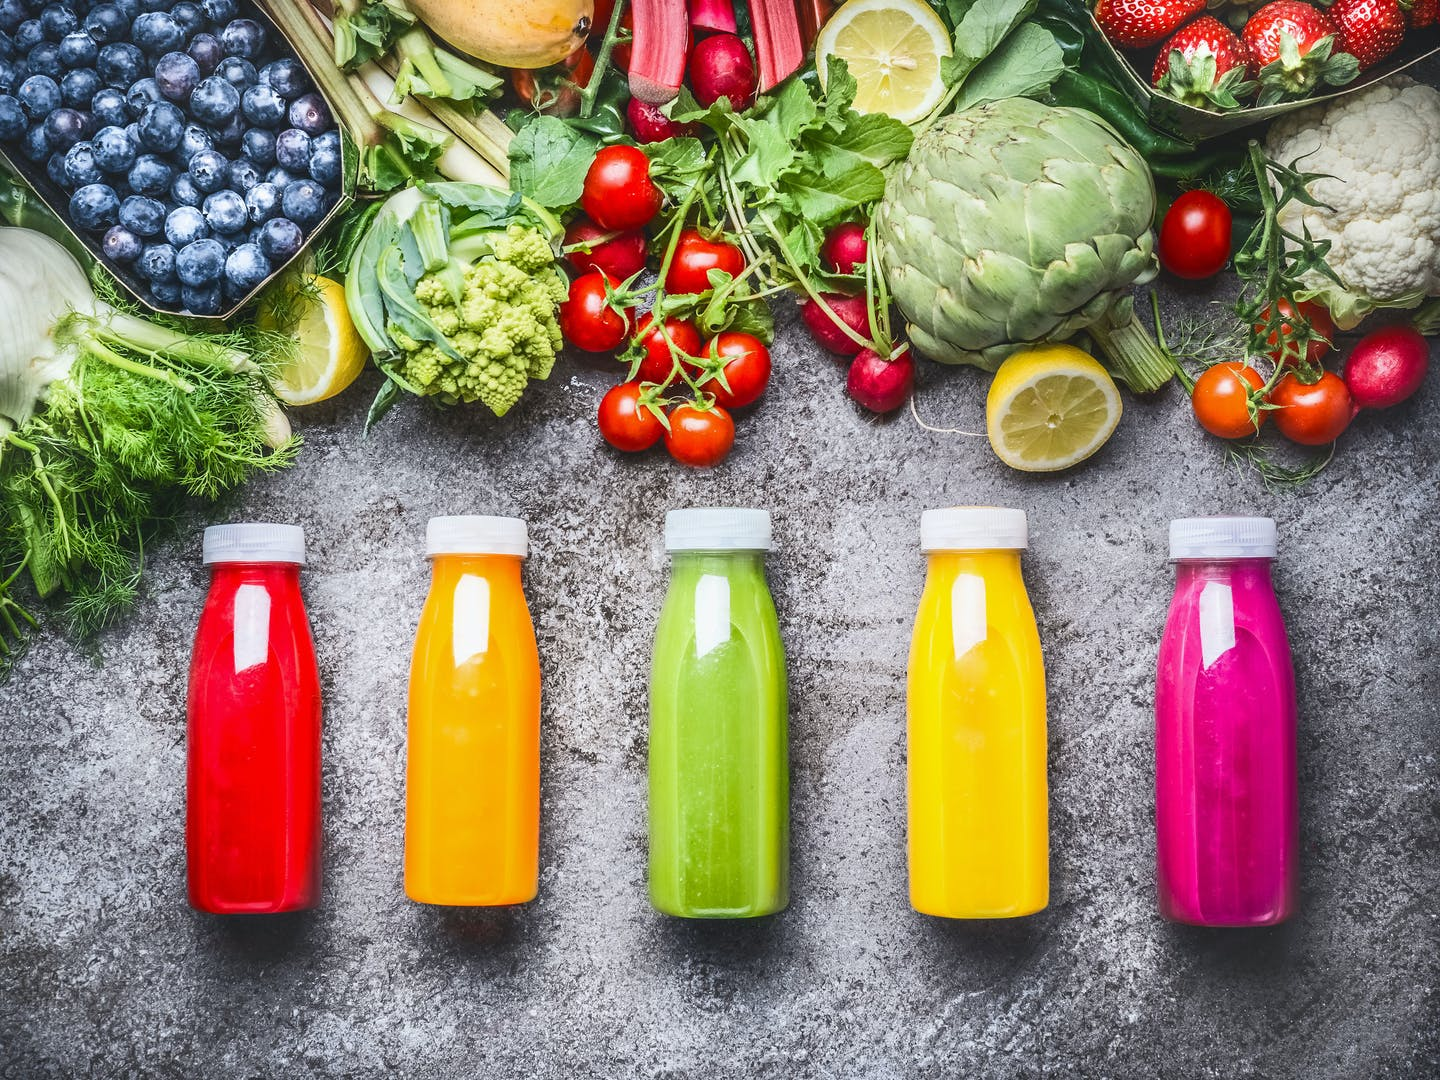 5 ways food manufacturers can switch to organic options